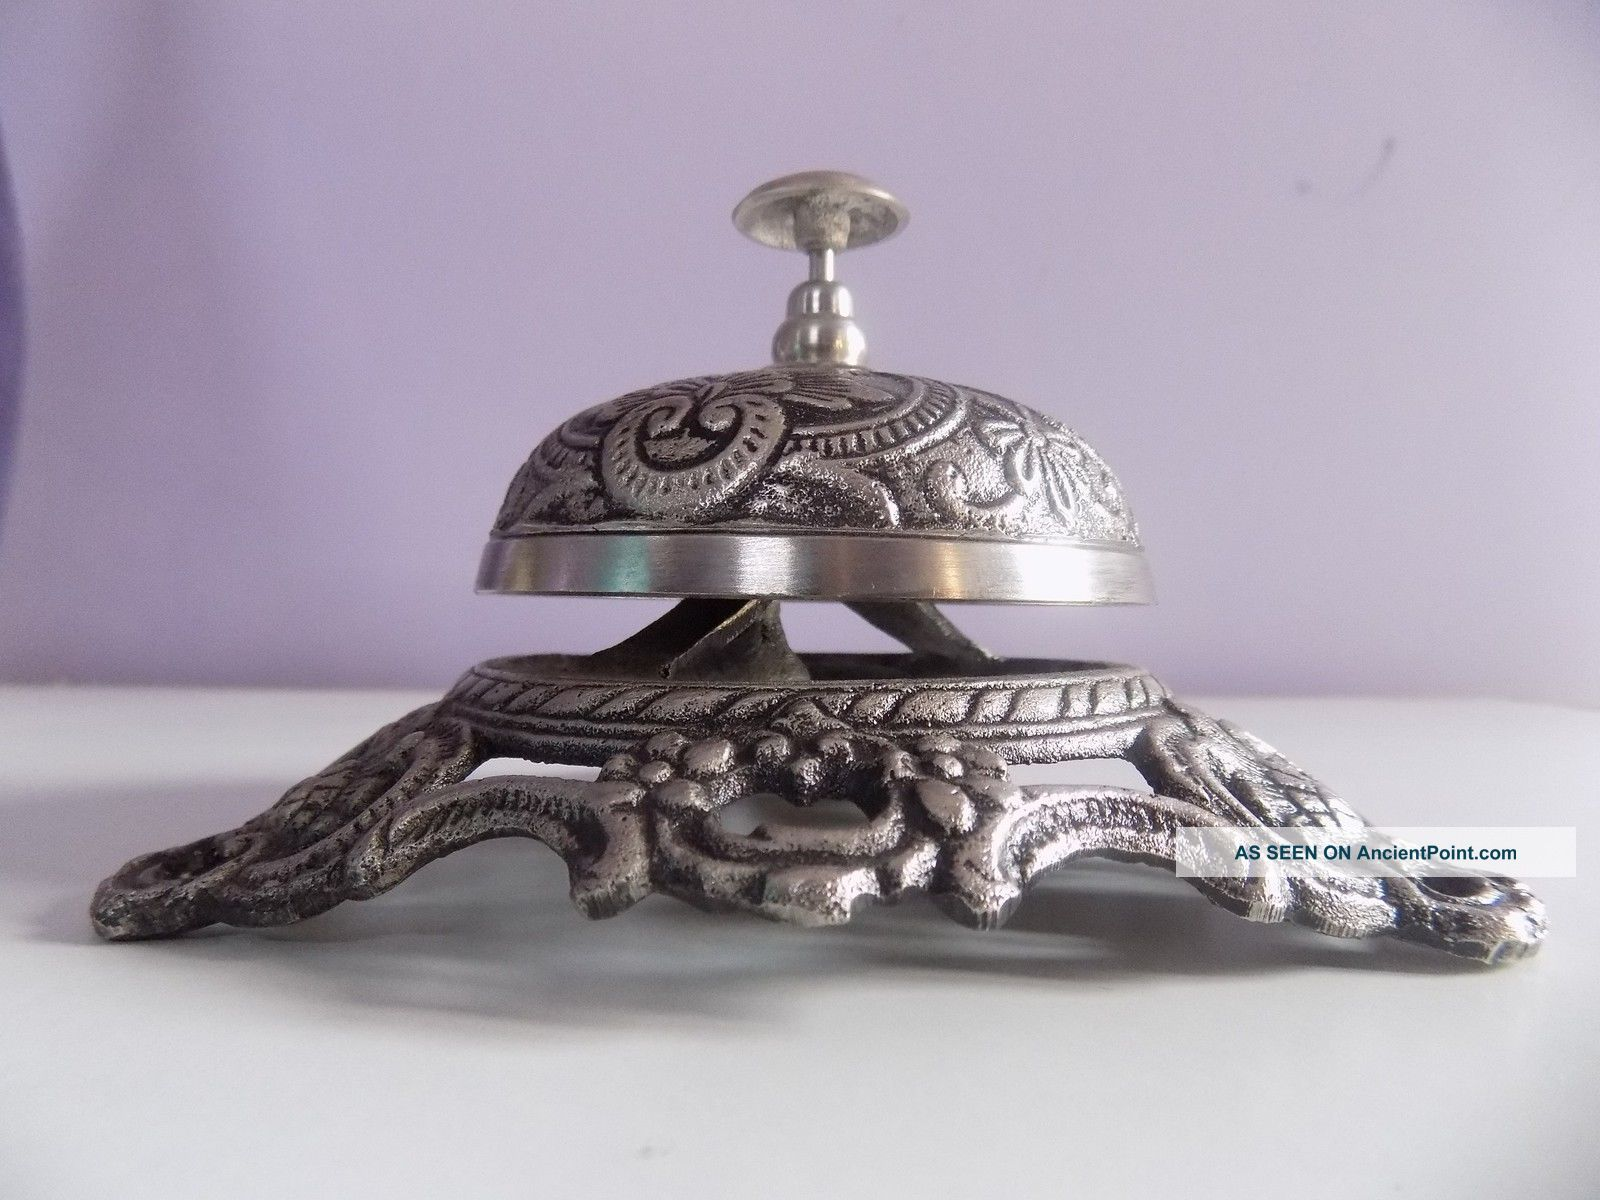 Brass Antique Vintage Style Office Desk Reception Call Bell Decor Service Bells & Whistles photo